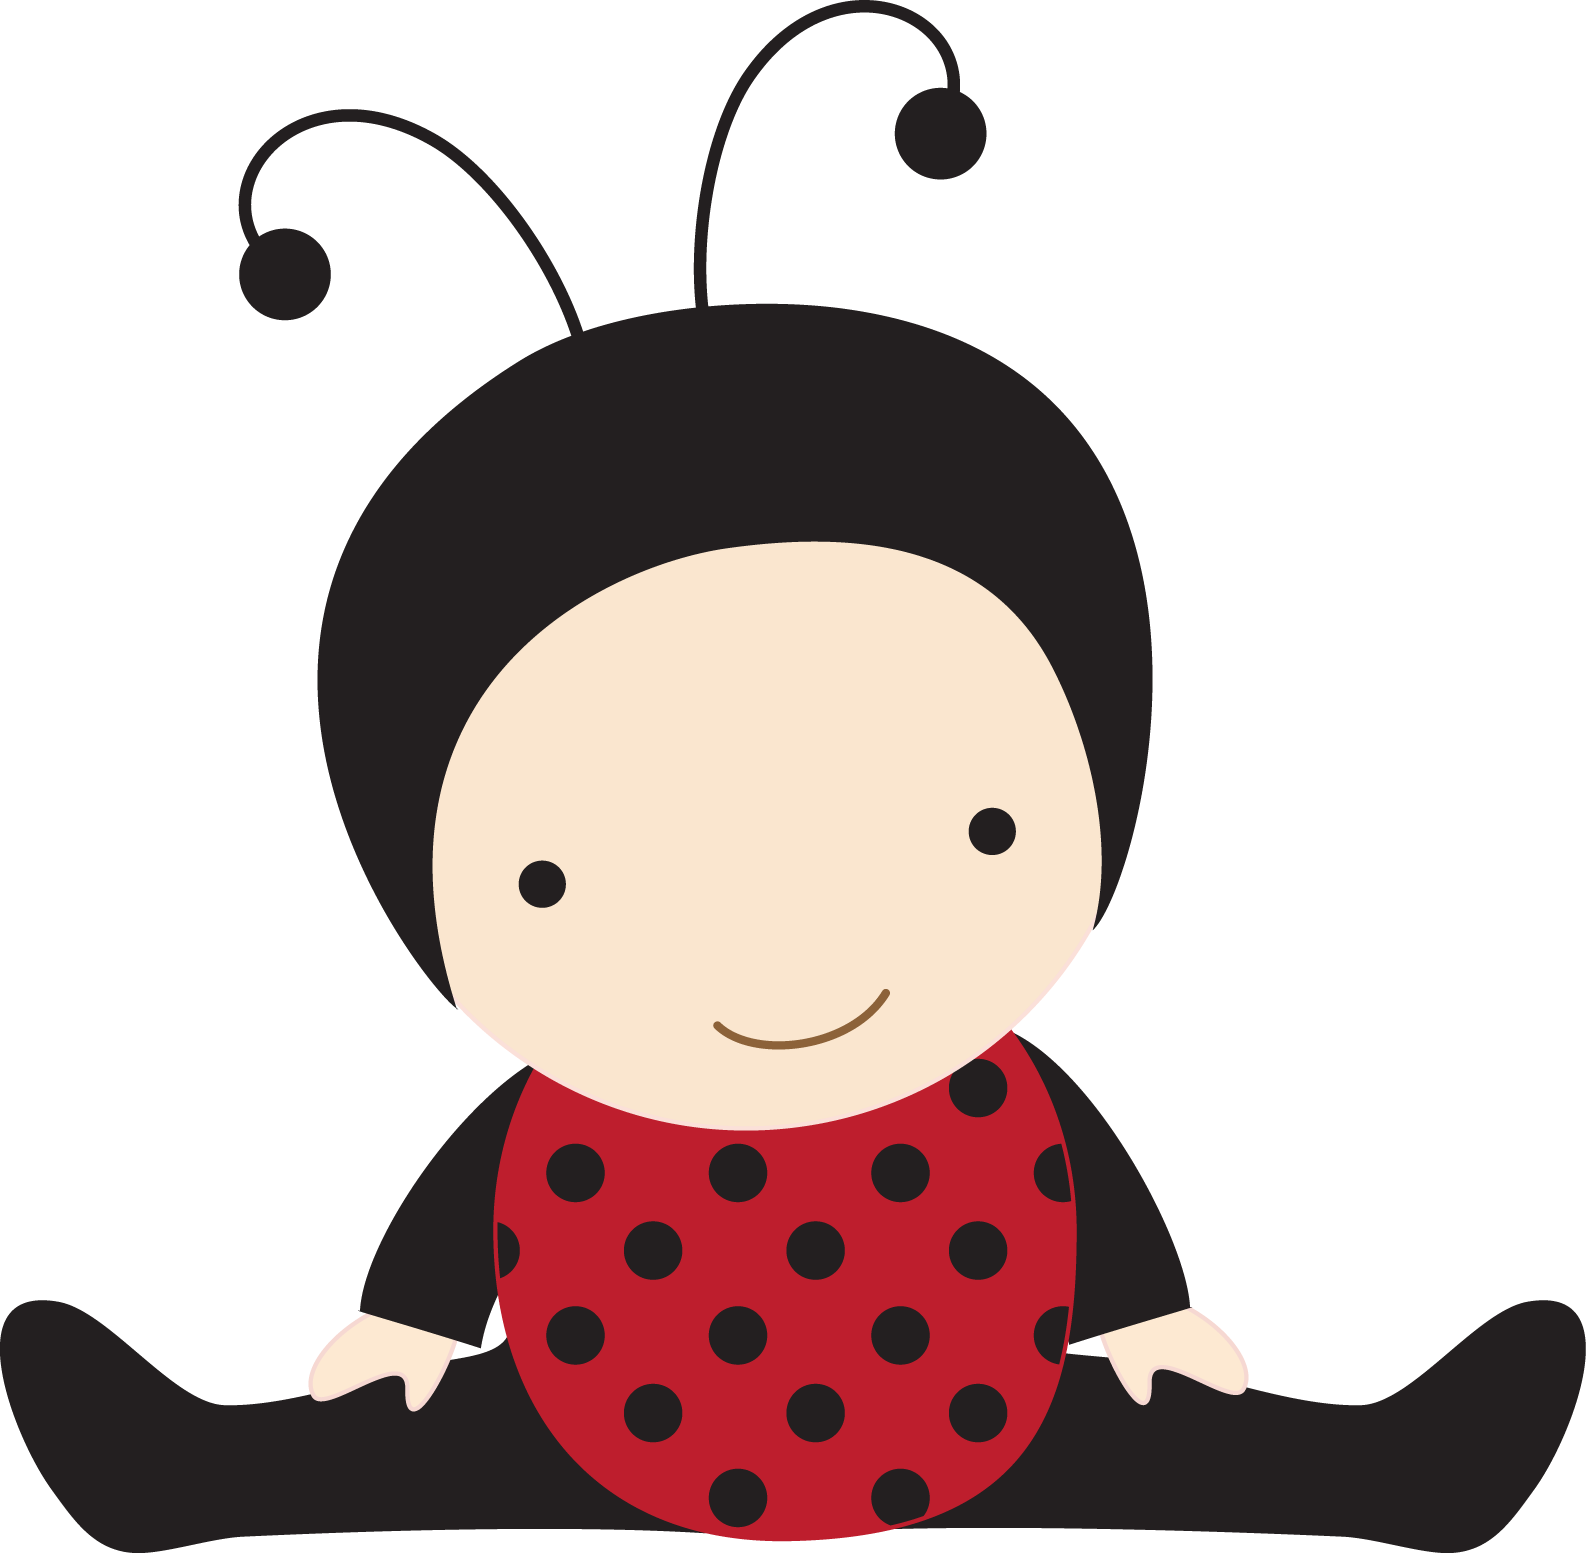 Ladybug clipart cute baby.  collection of high